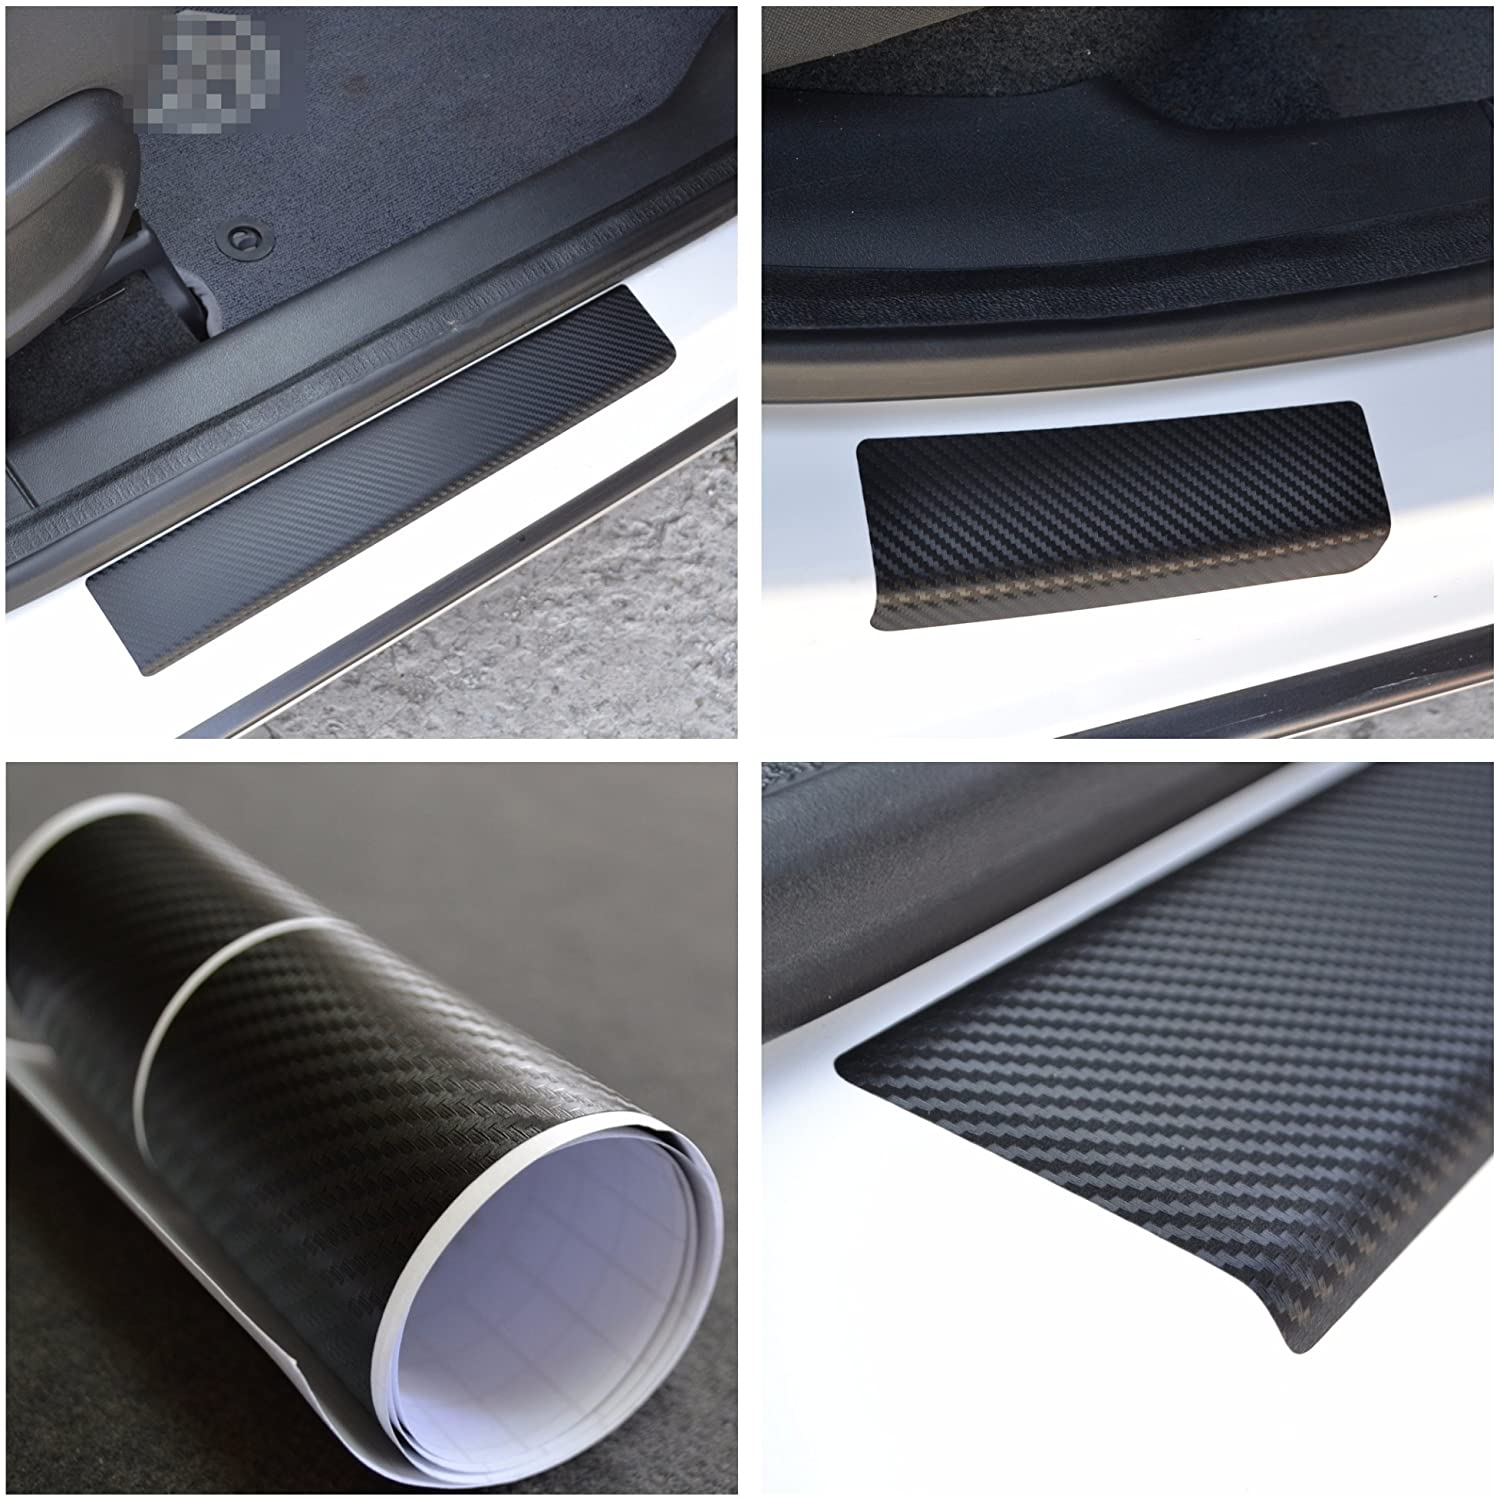 Door Sill Vinyl Wrap Scuff Protection Film fit Ford Kuga II 2013-2017 Black Carbon Fiber Texture Decals Entry Guard 4 pcs Kit Paint Protector